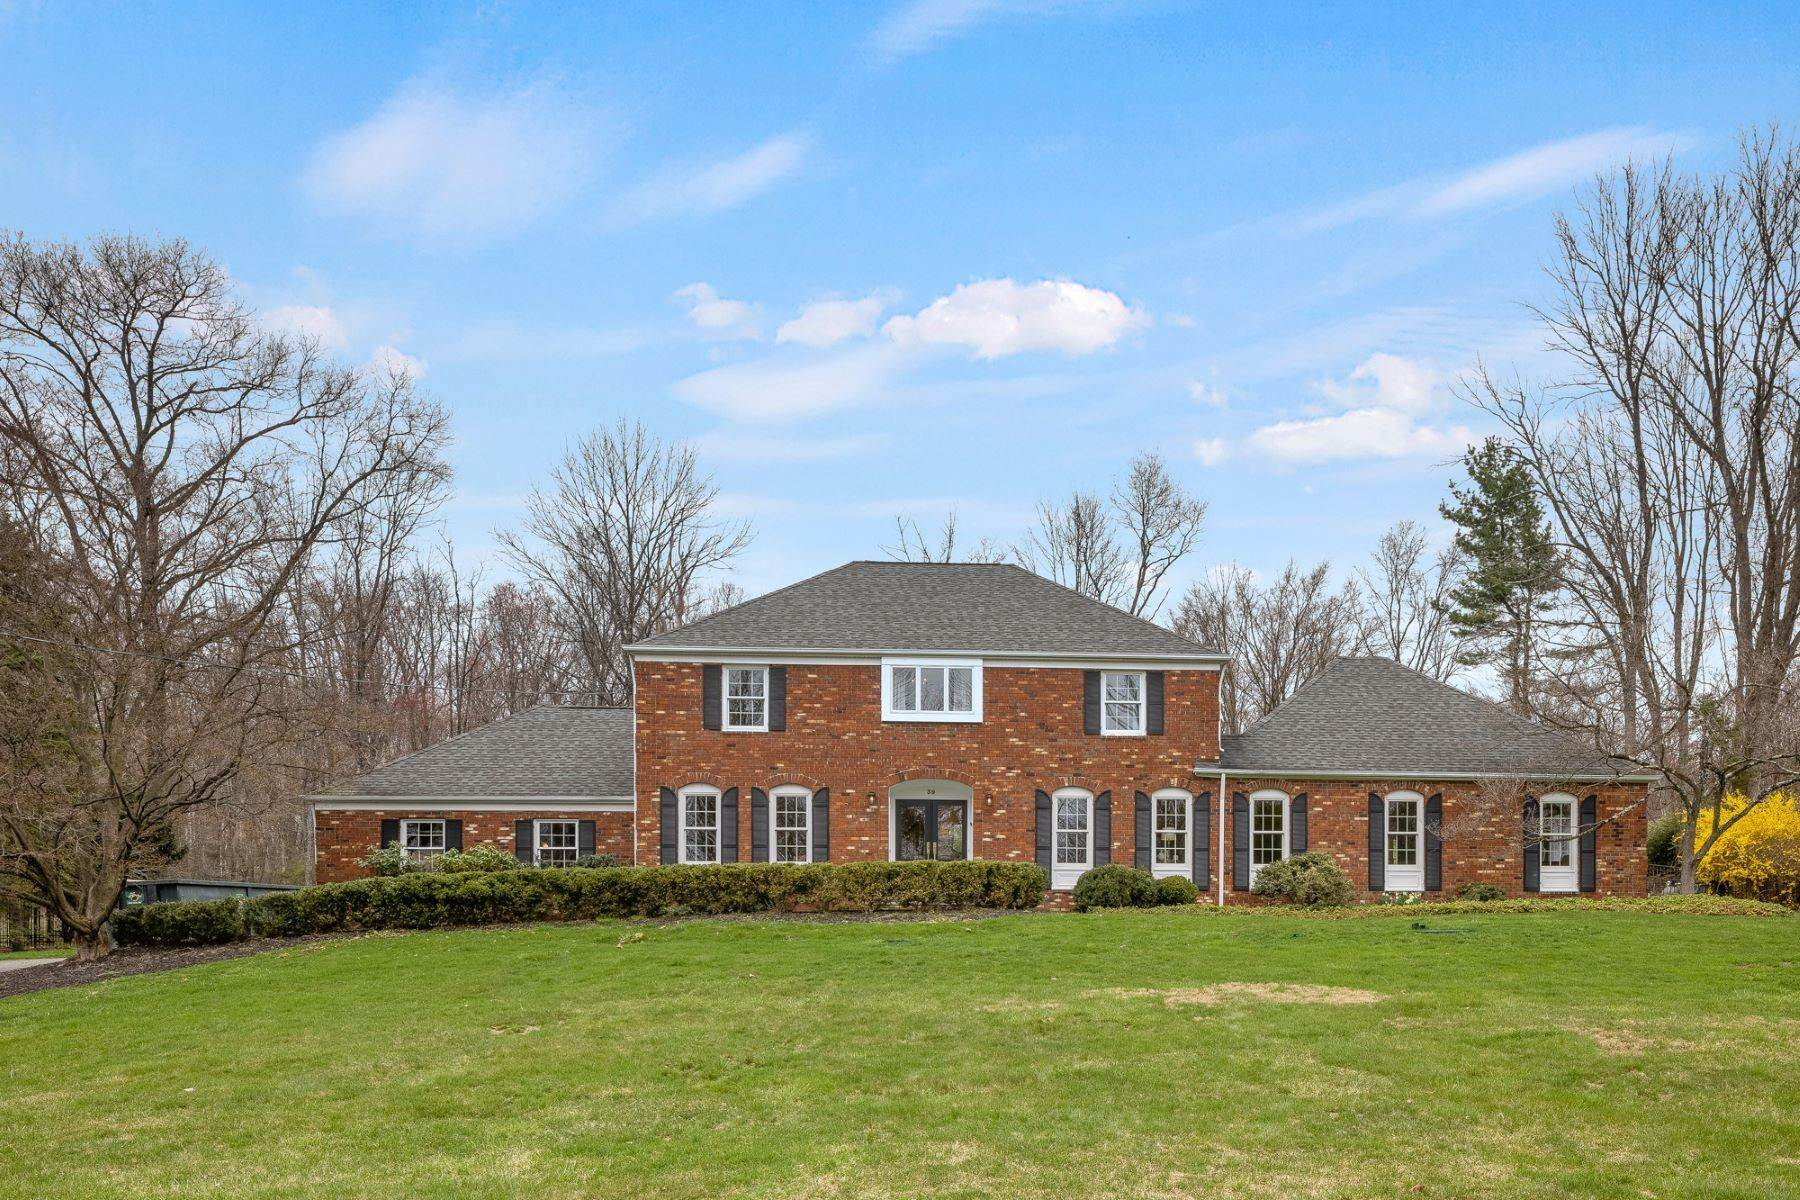 Single Family Homes for Sale at Gracious and Classic Colonial 39 Mount Pleasant Road Mendham, New Jersey 07945 United States